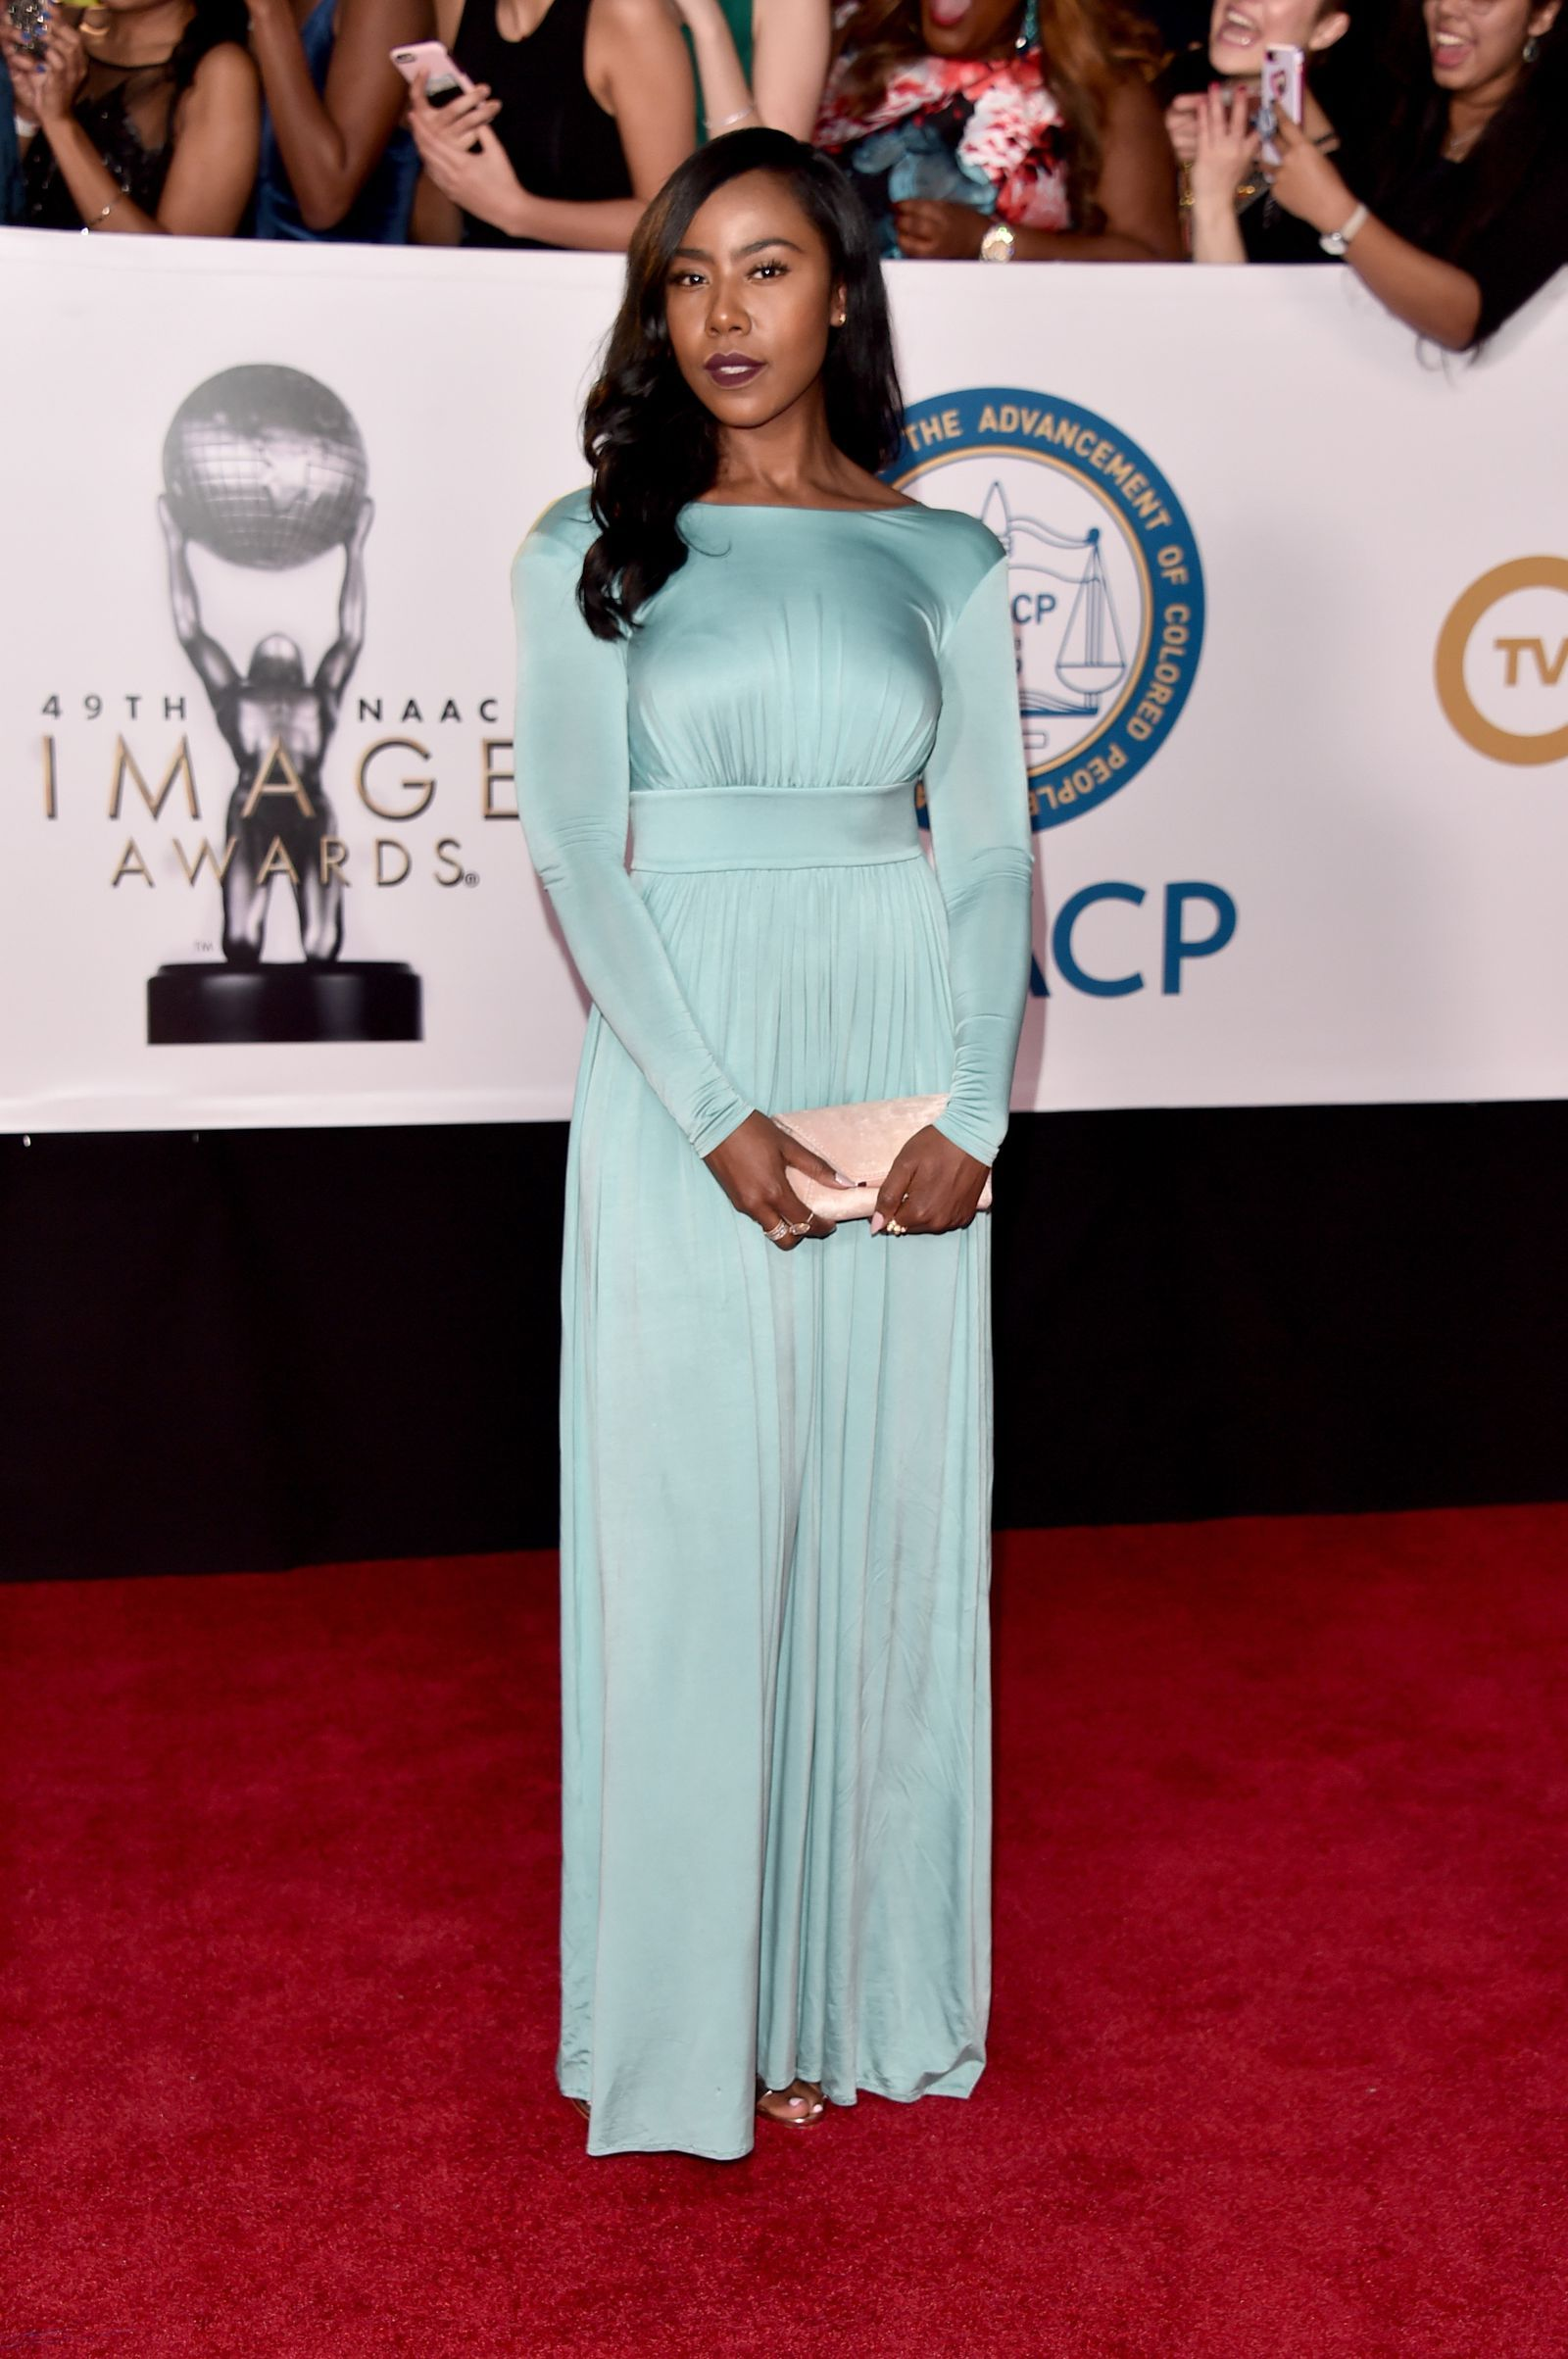 85f94fe8122 All the Looks From the 49th NAACP Image Awards Red Carpet